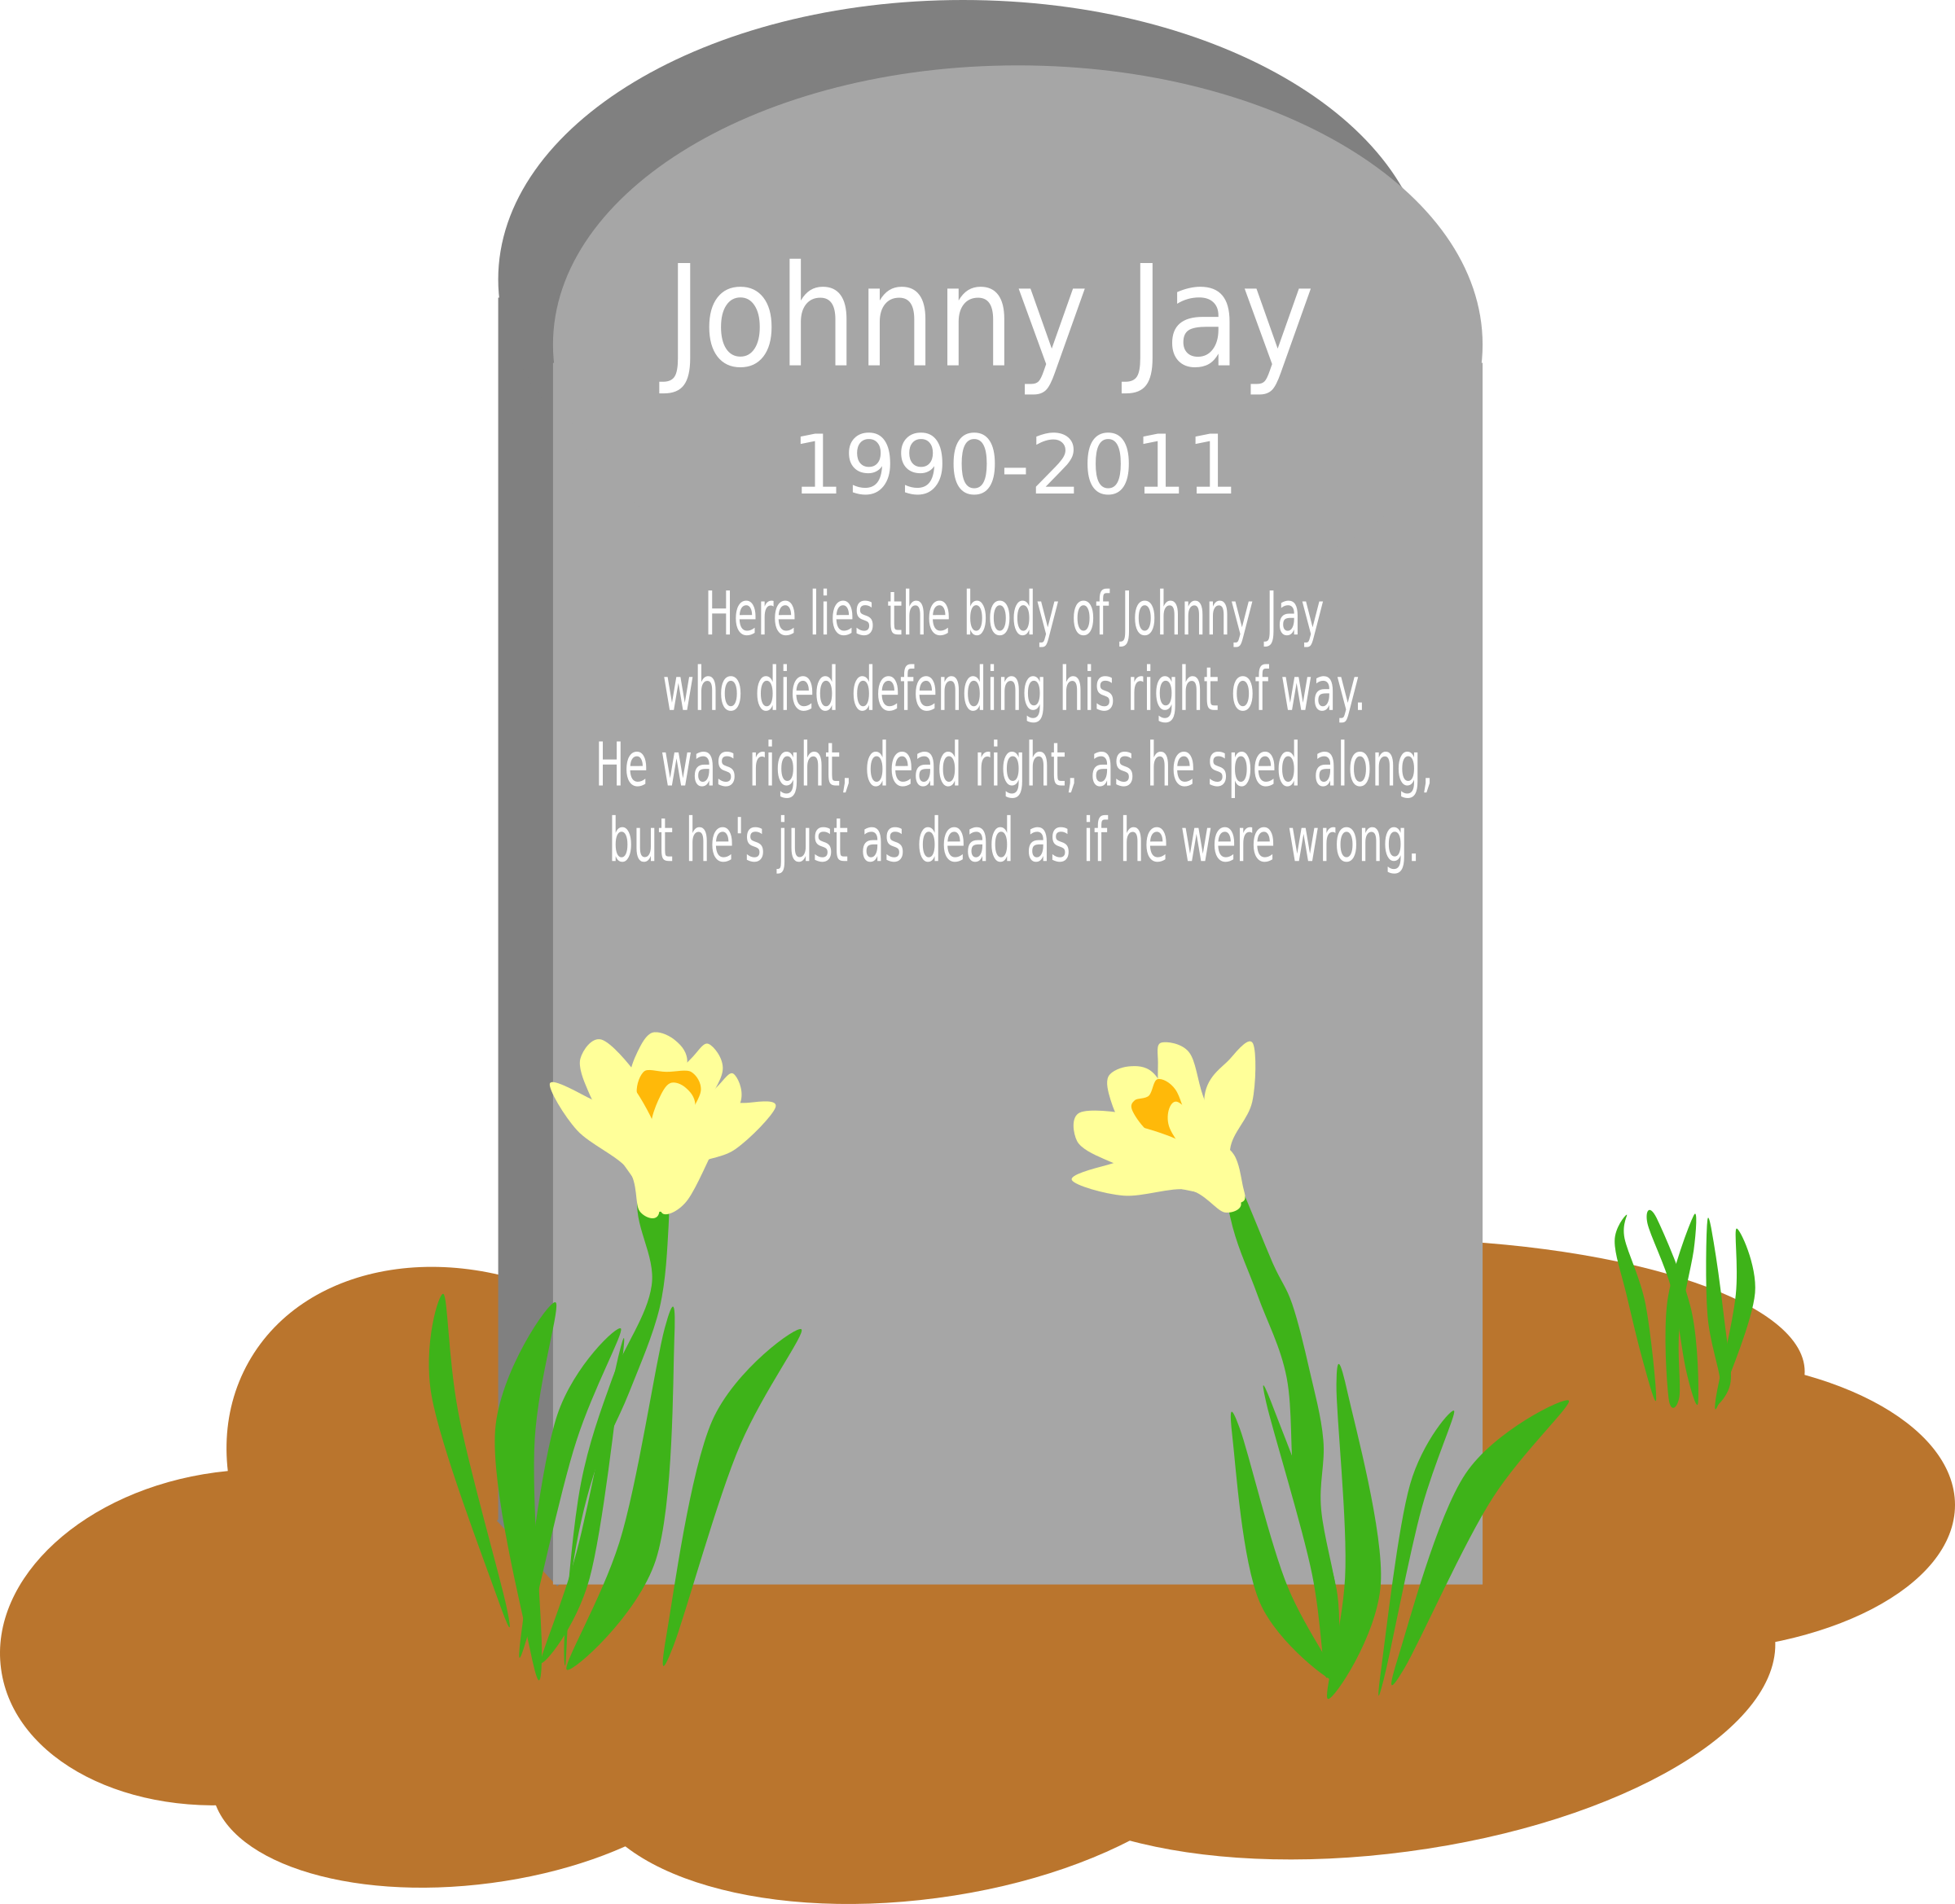 Grave clipart transparent Jay The Johnny grave of